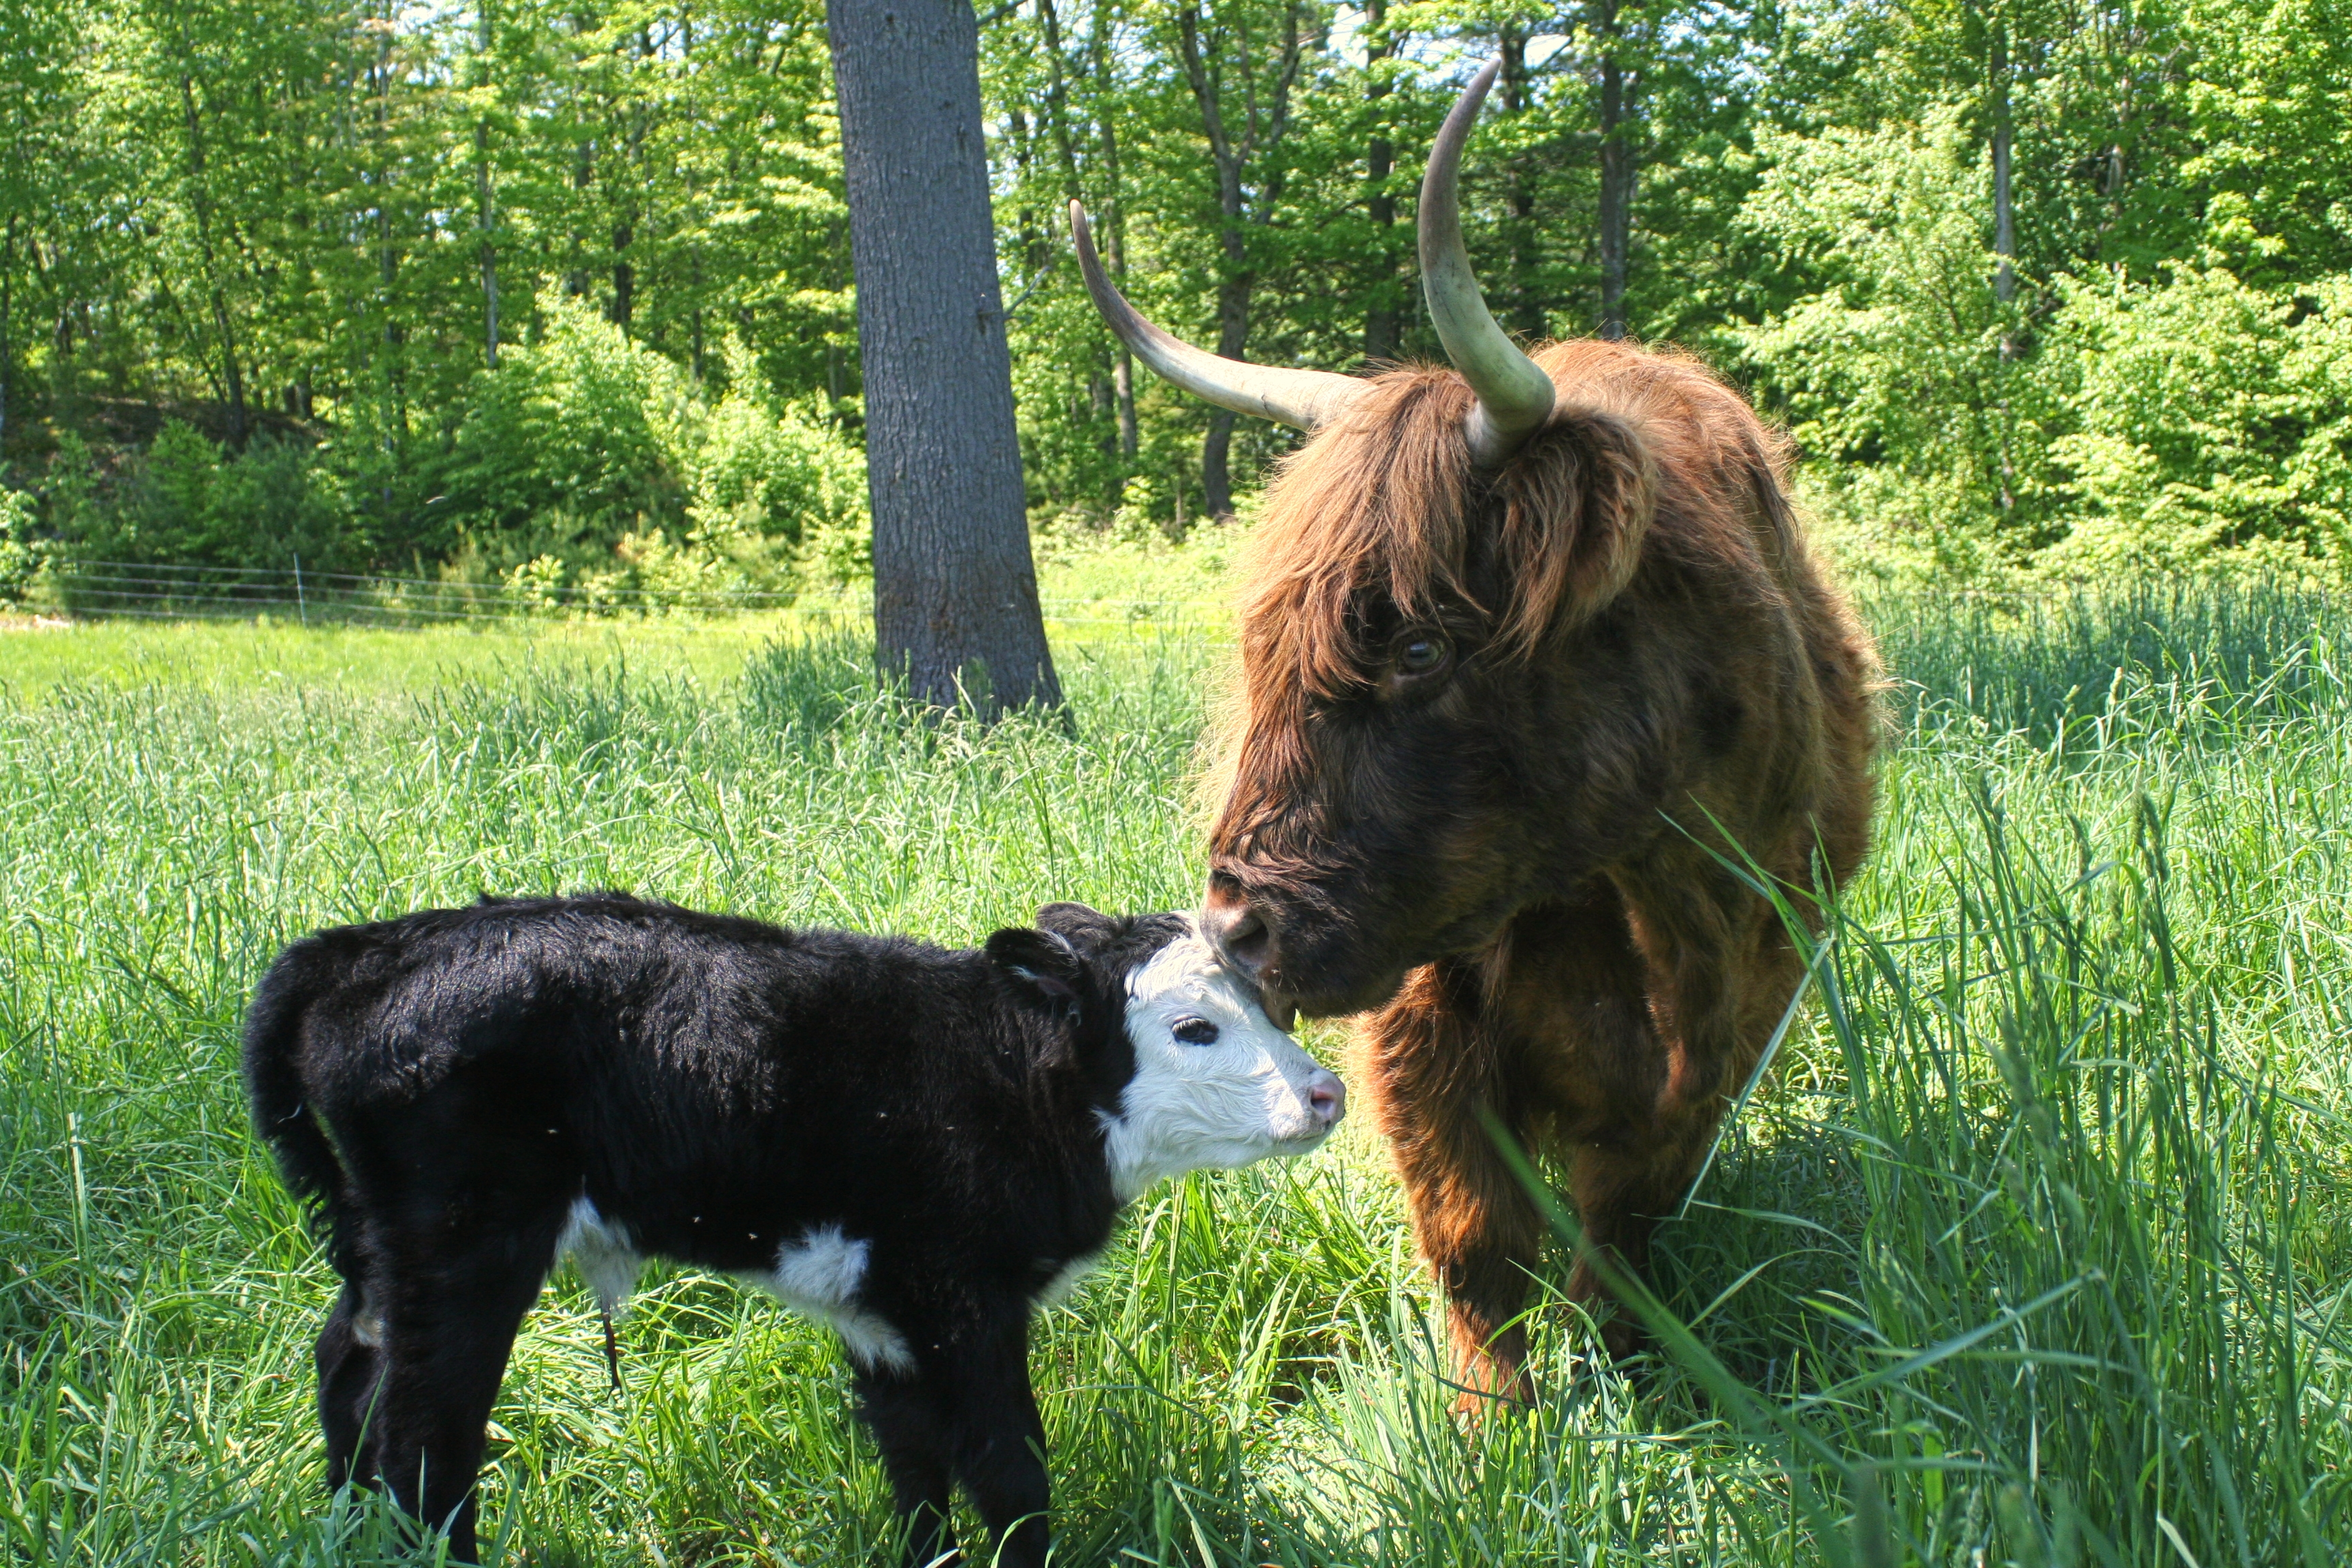 Laverne with Calf